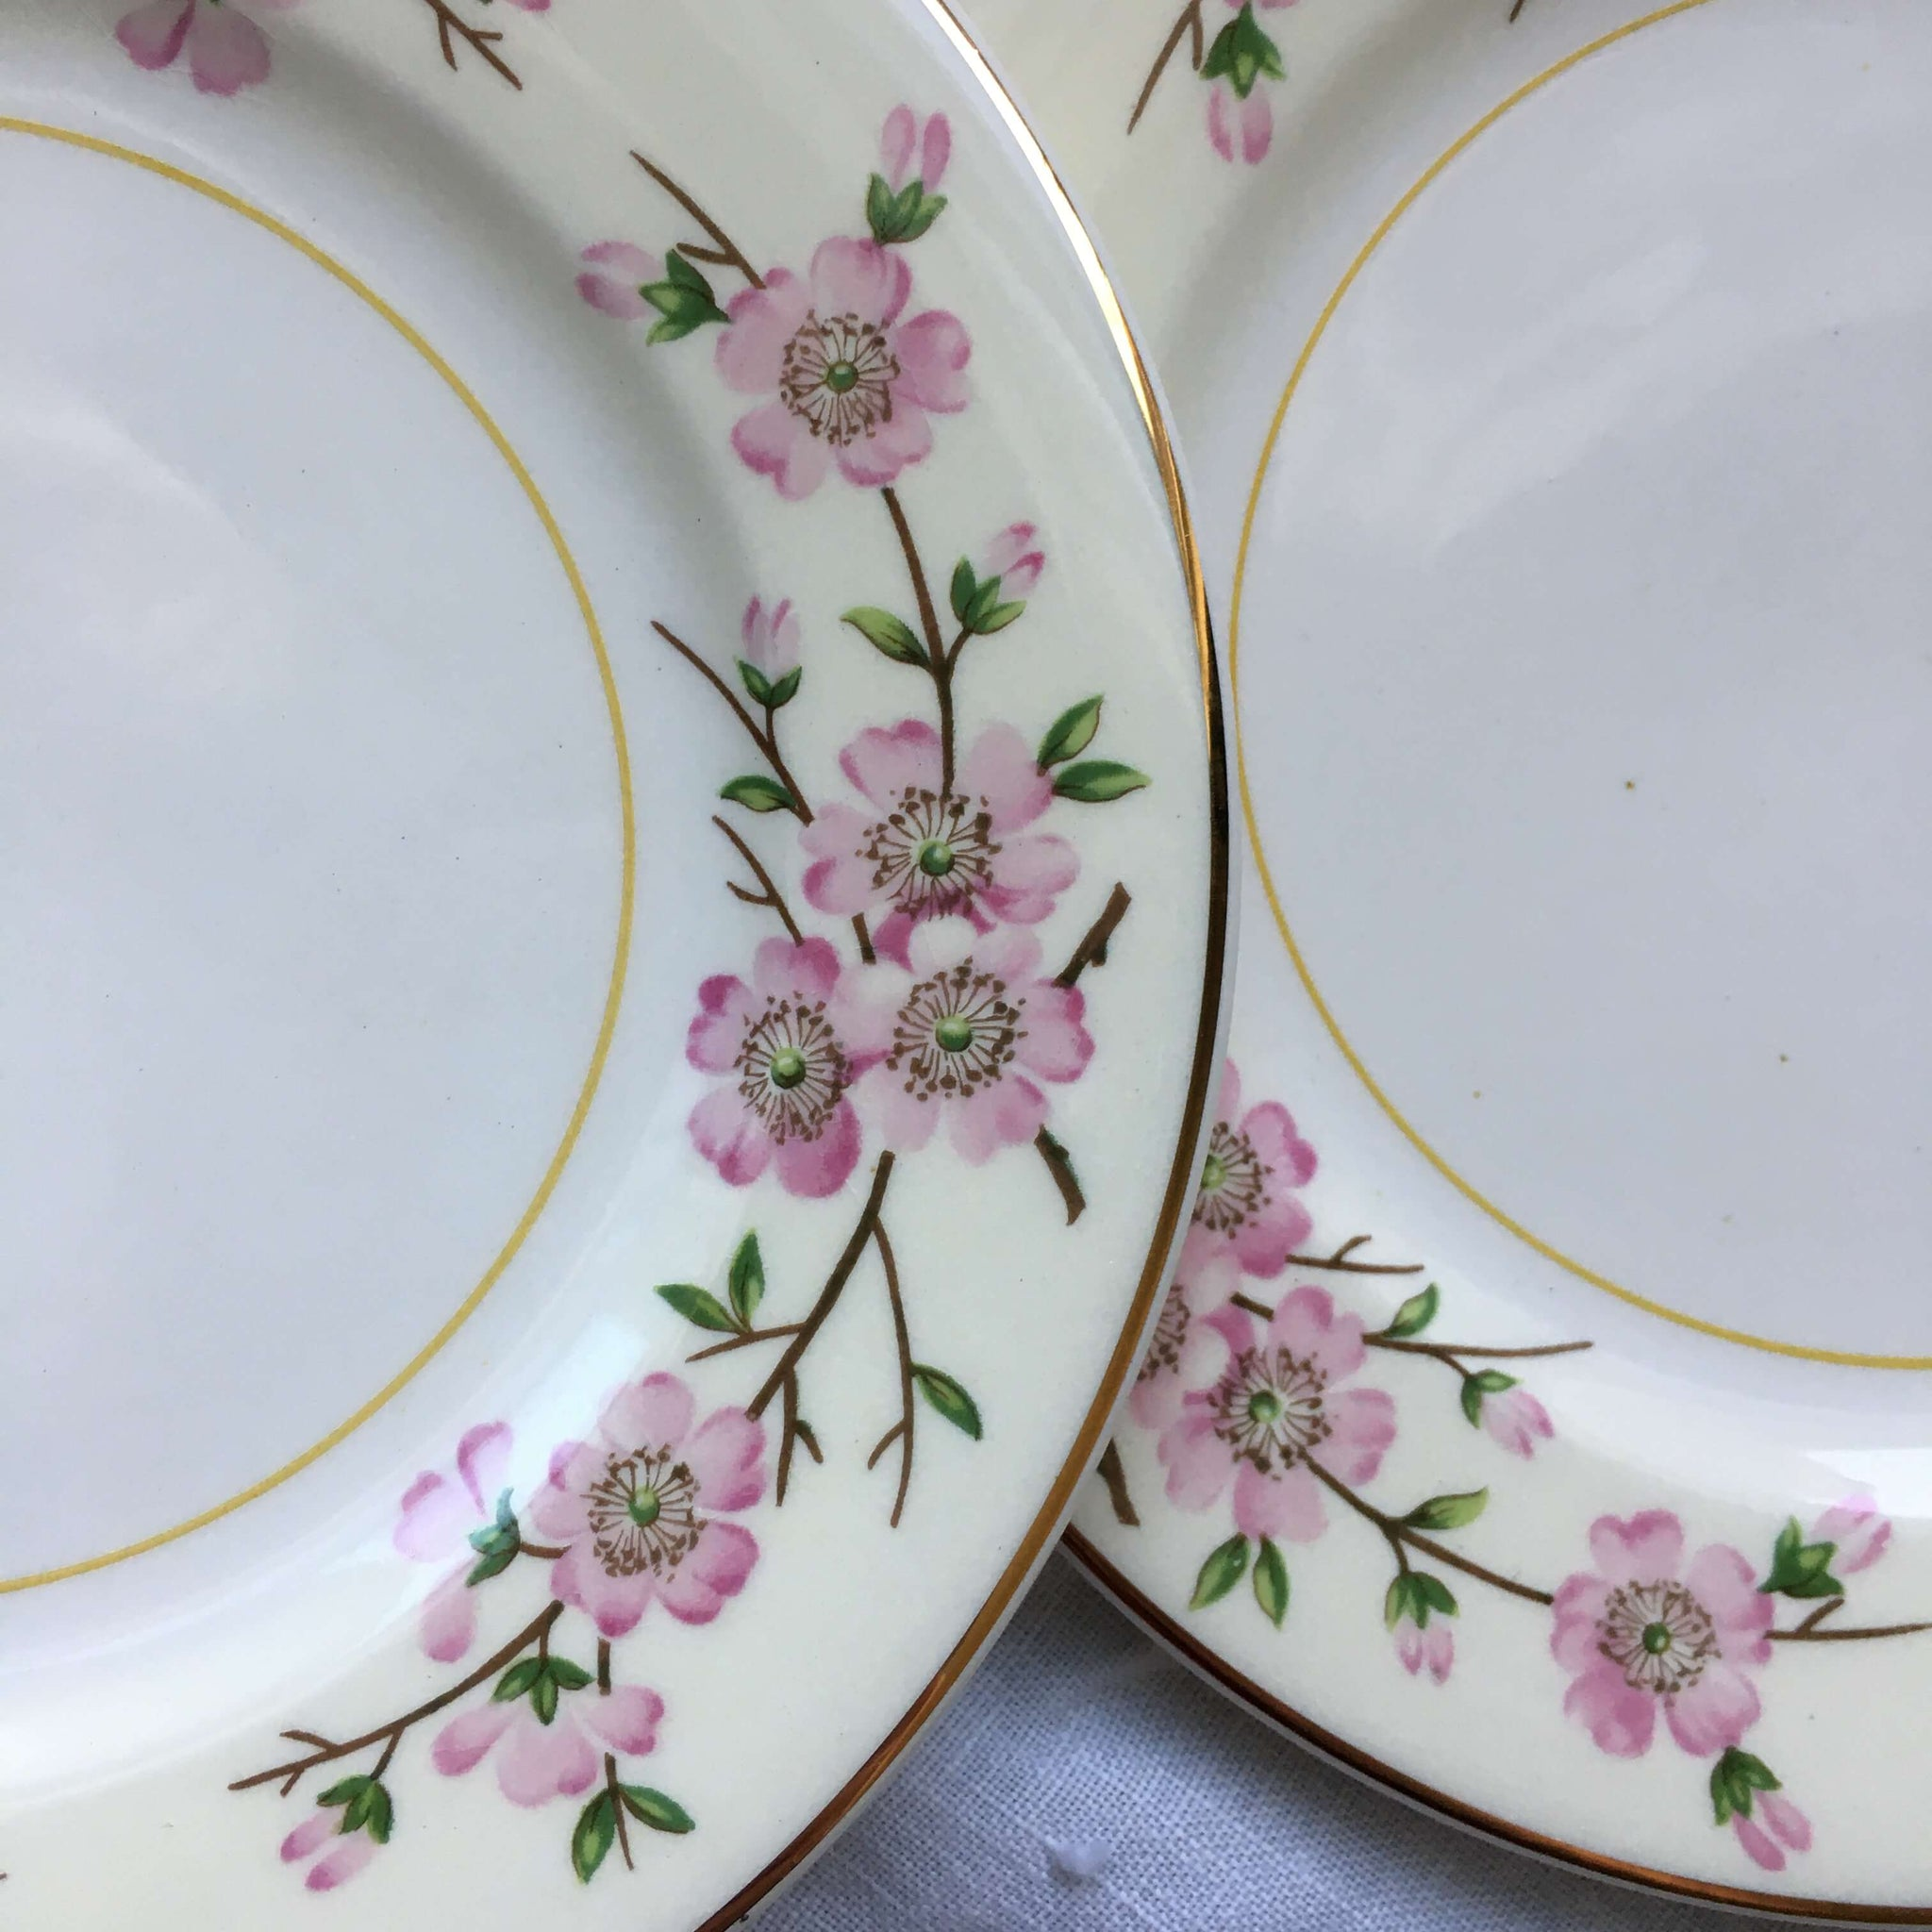 Vintage 1940s Harmony House Maytime Bread and Butter Plates - Set of 3 - Cherry Blossom Branches